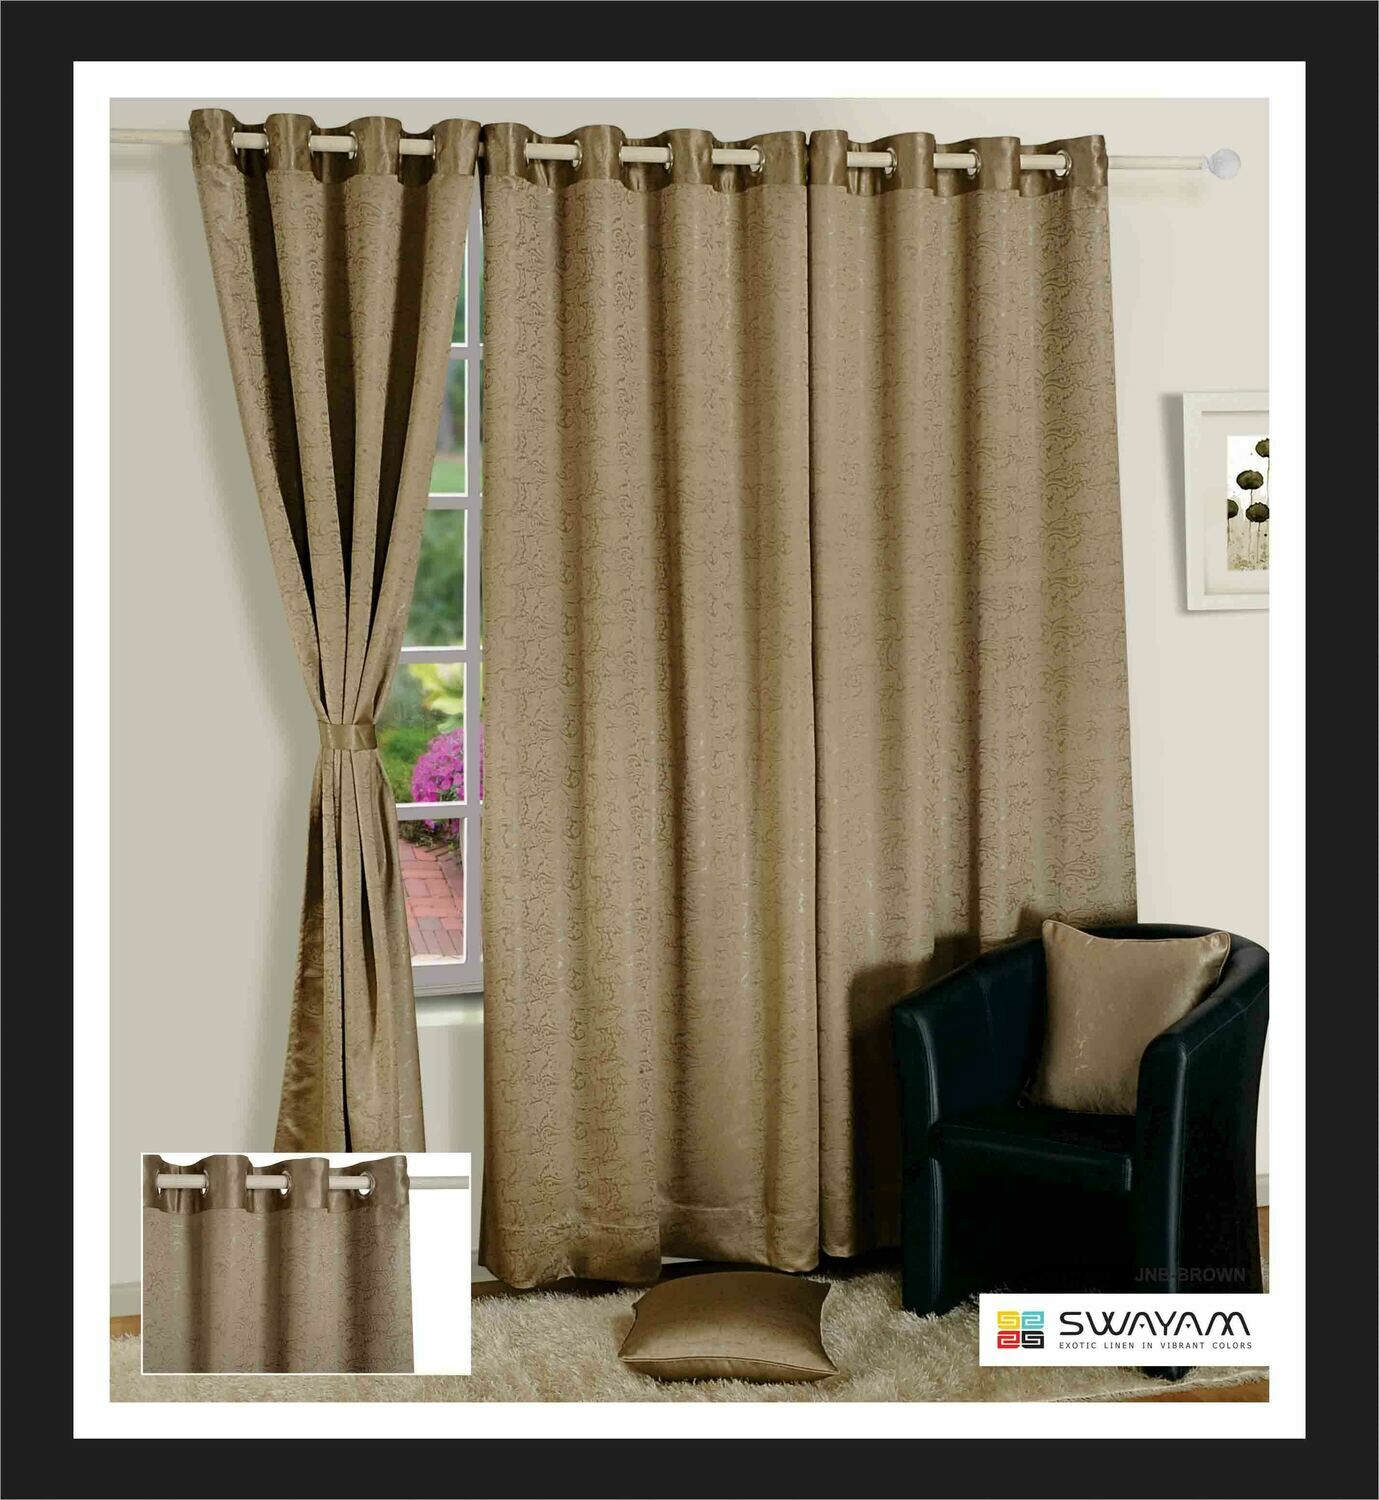 Swayam Beige Colour Paisley J&B Blackout Eyelet Curtain for Window